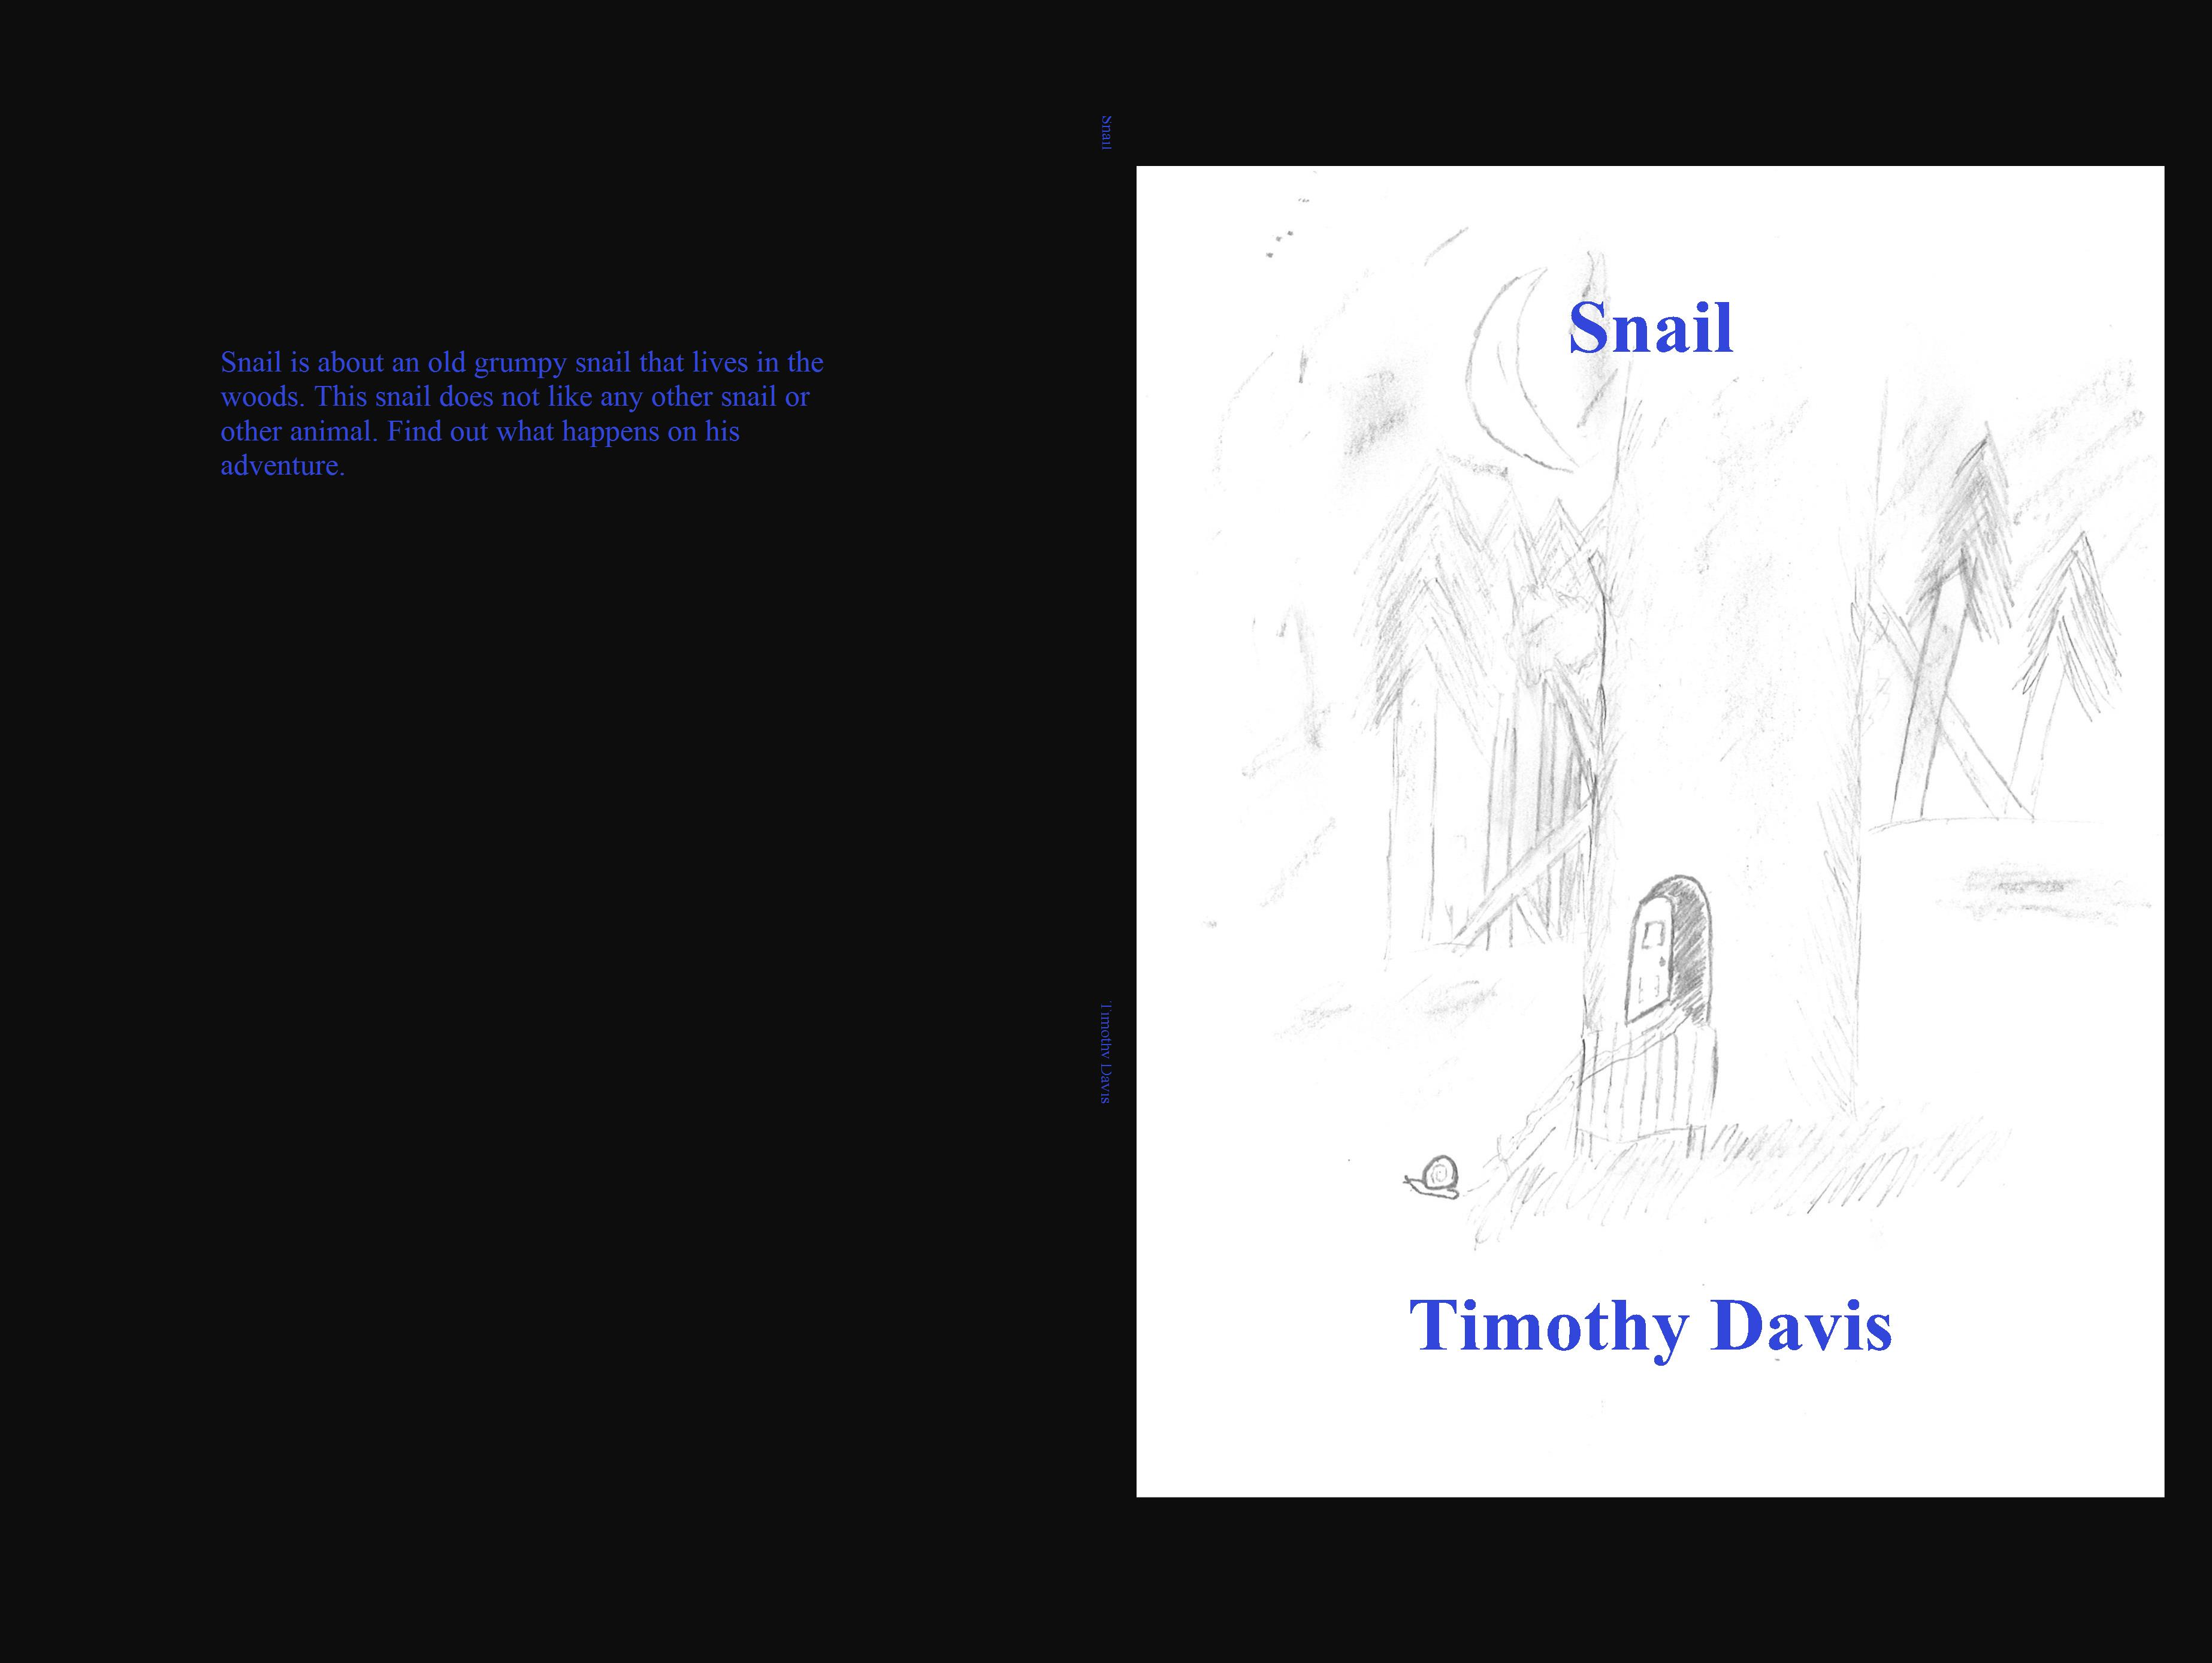 Snail cover image